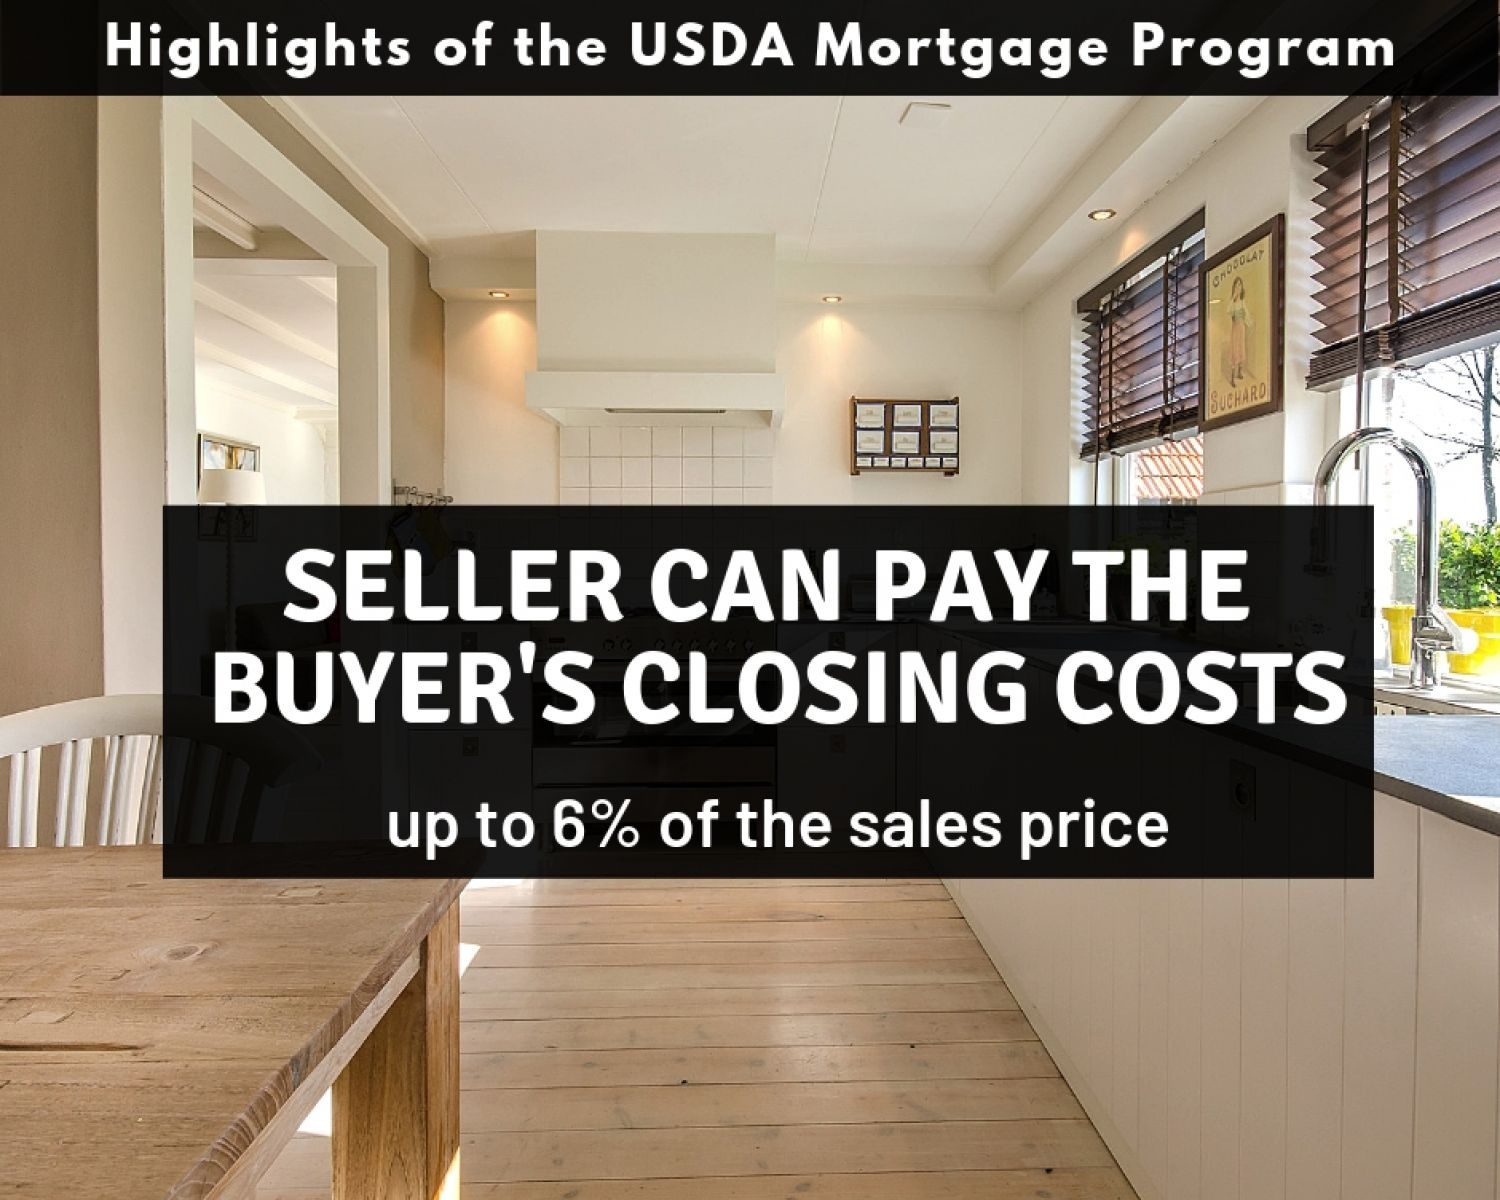 The seller can pay your closing costs with a Pennsylvania USDA Mortgage